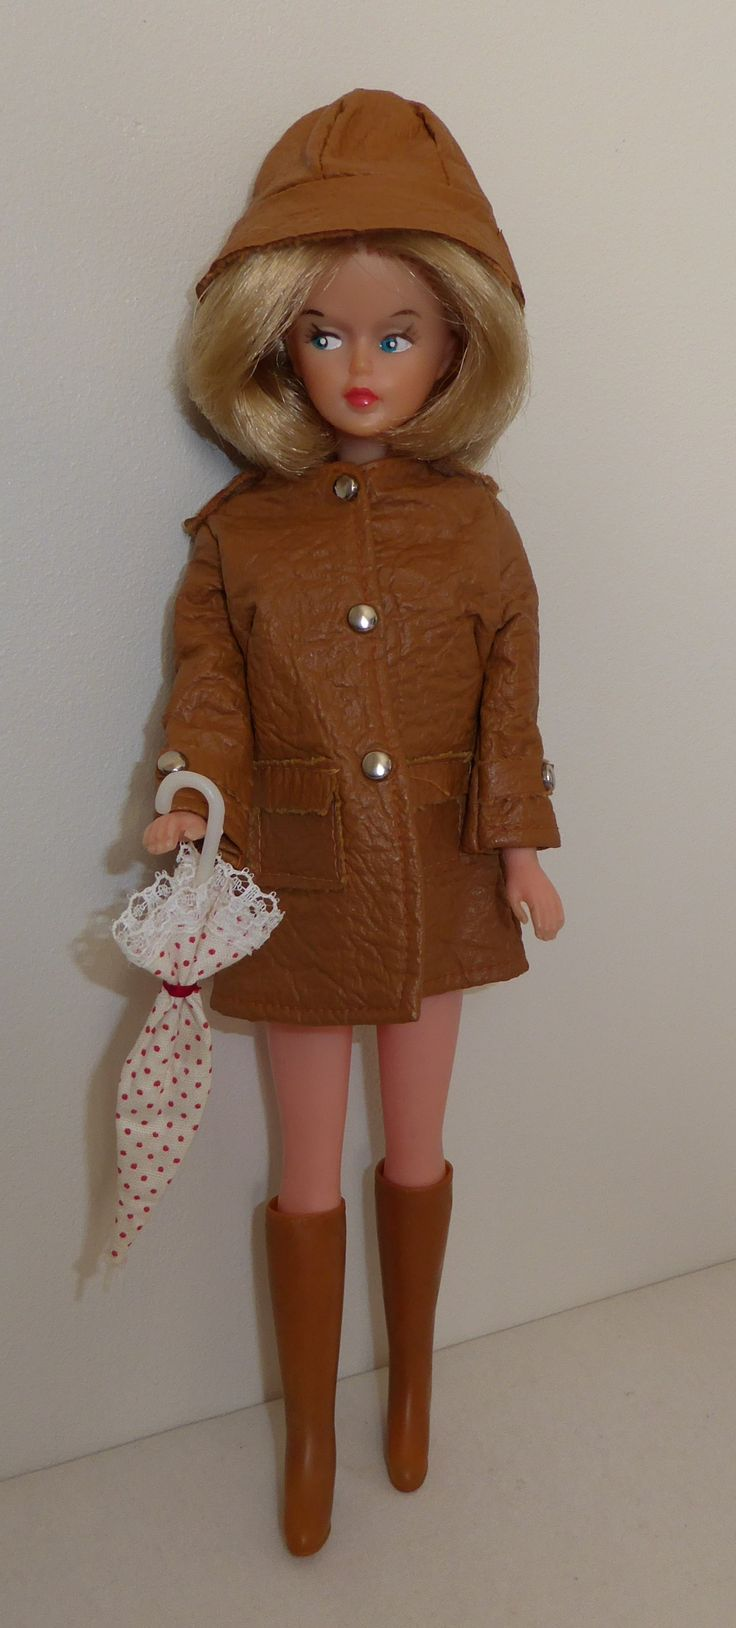 2nd version outfit Tressy's Fashion Scene Rainy day. Brown version.